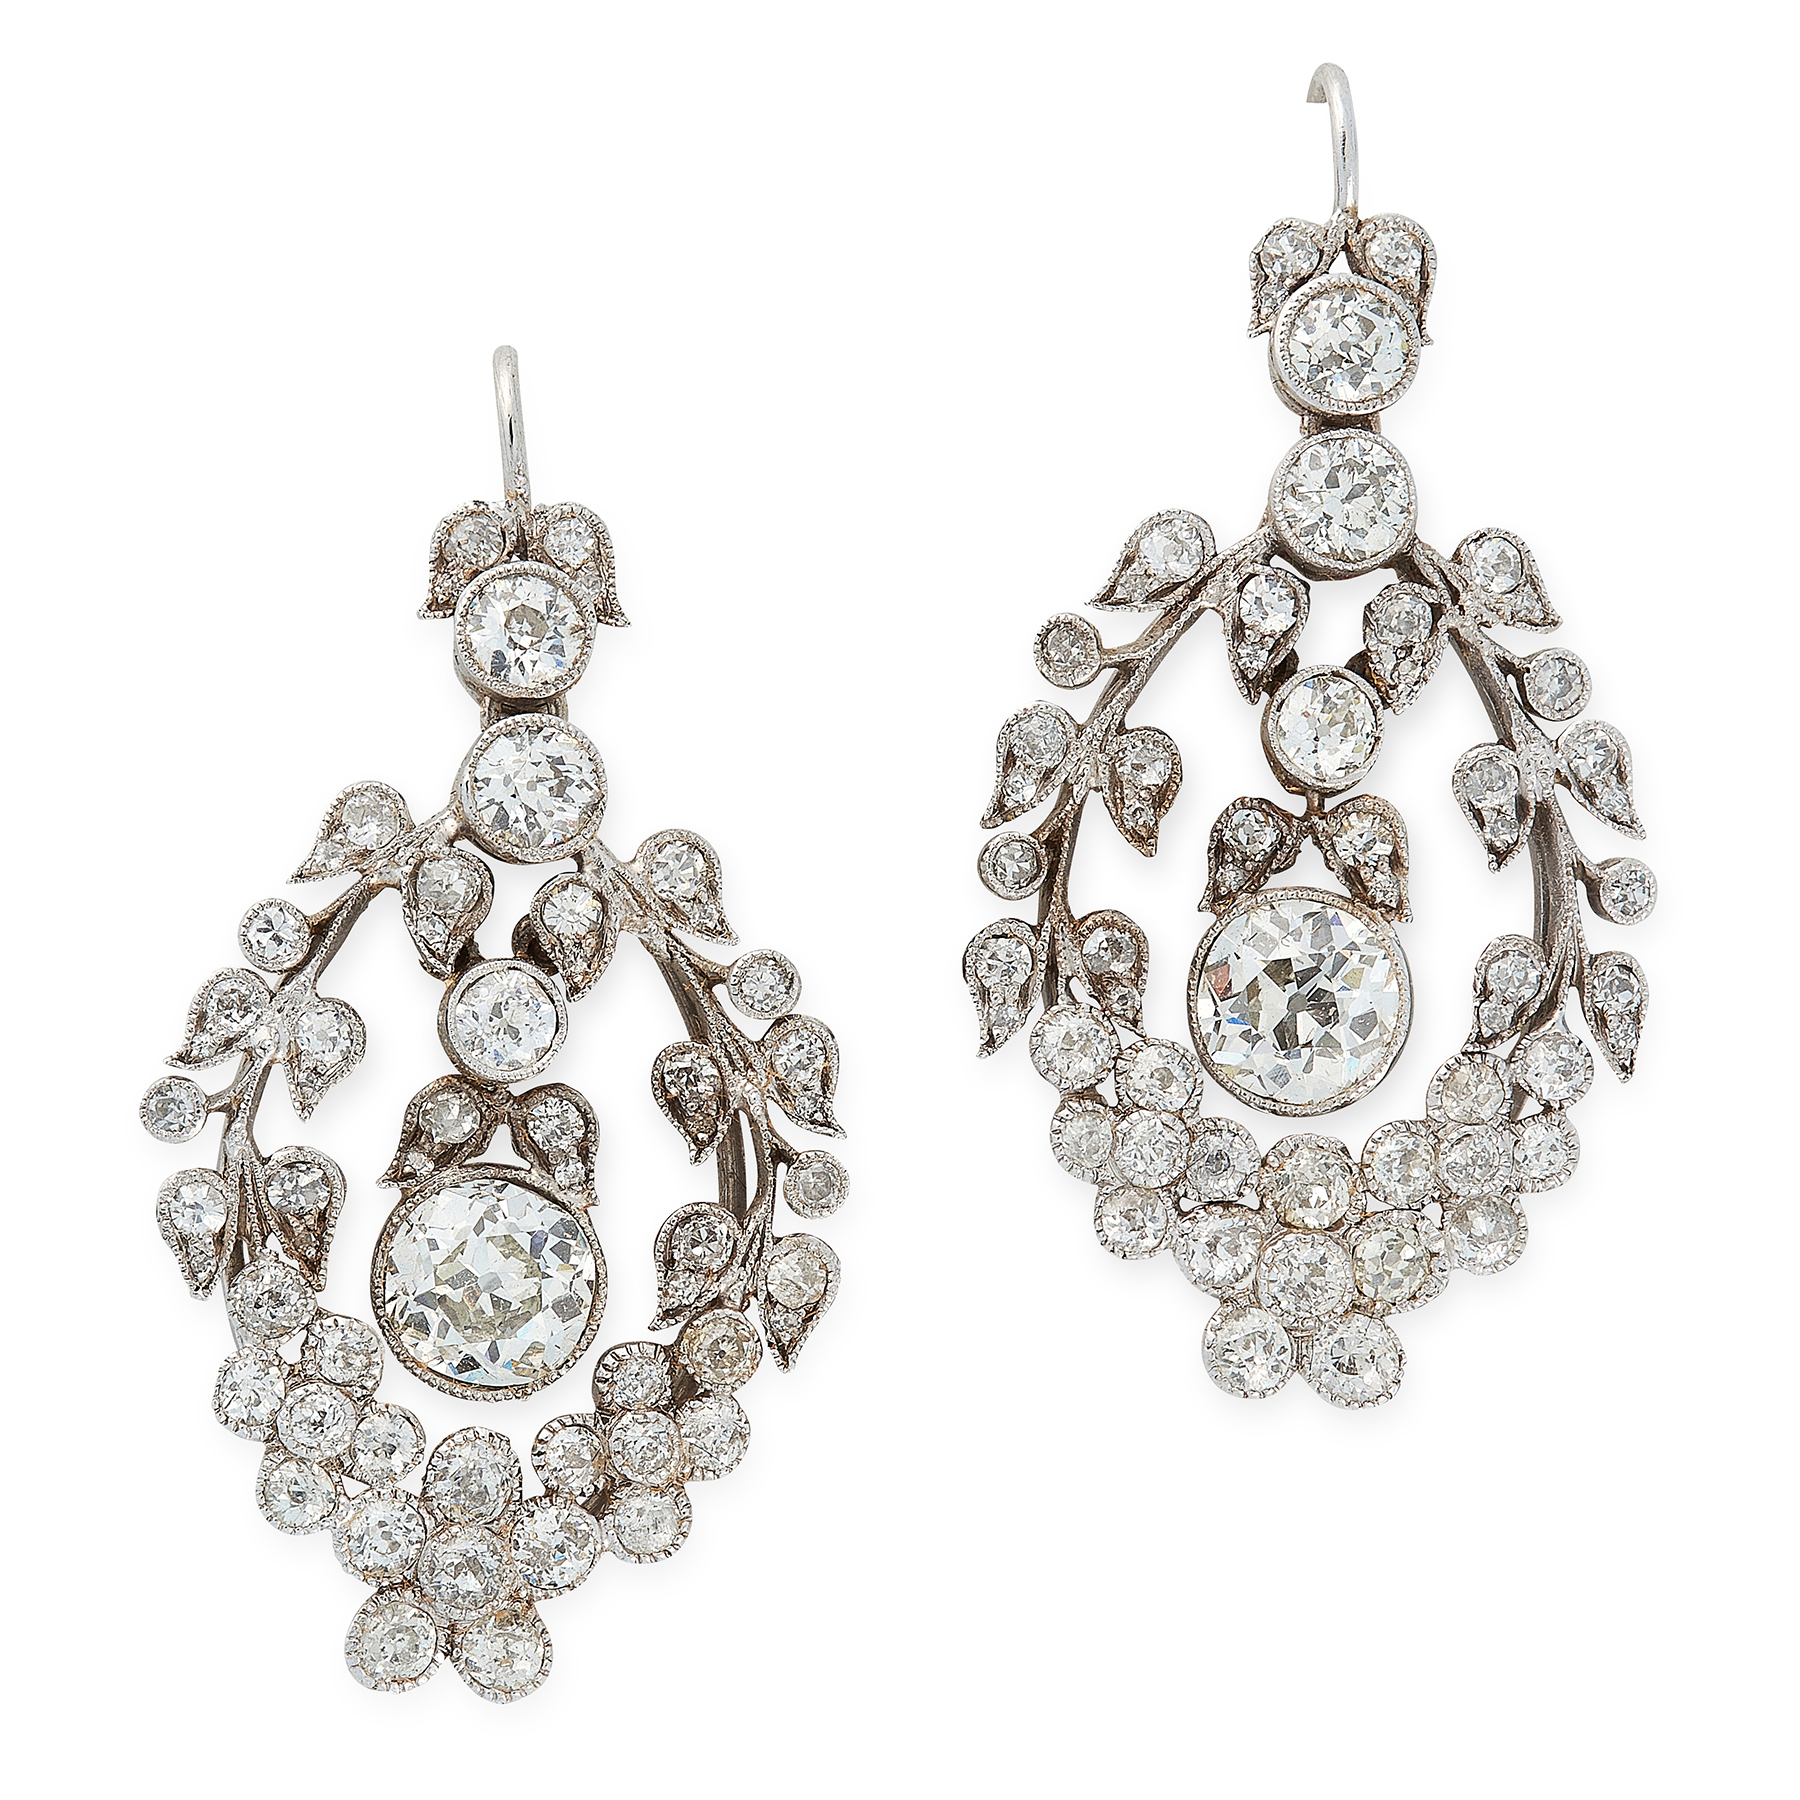 A PAIR OF DIAMOND EARRINGS, EARLY 20TH CENTURY each set with an old round cut diamond of 1.14 and